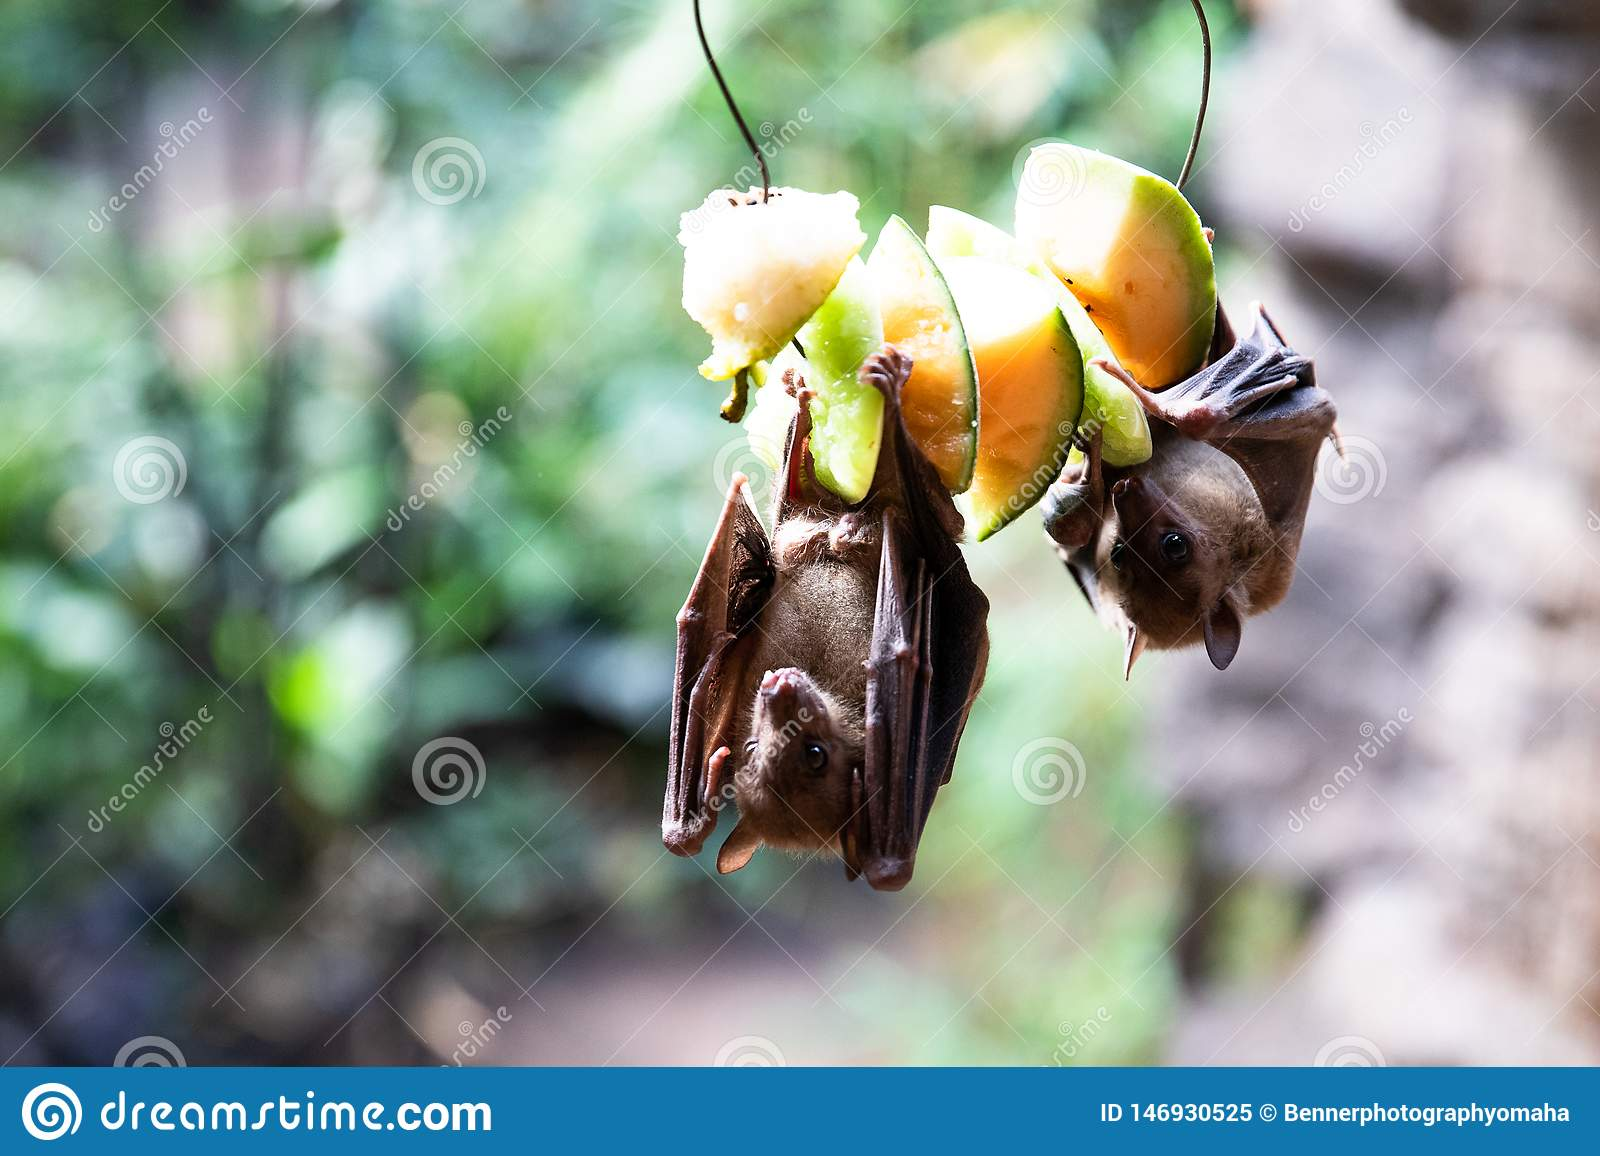 Fruit bats eating on fruit at the zoo